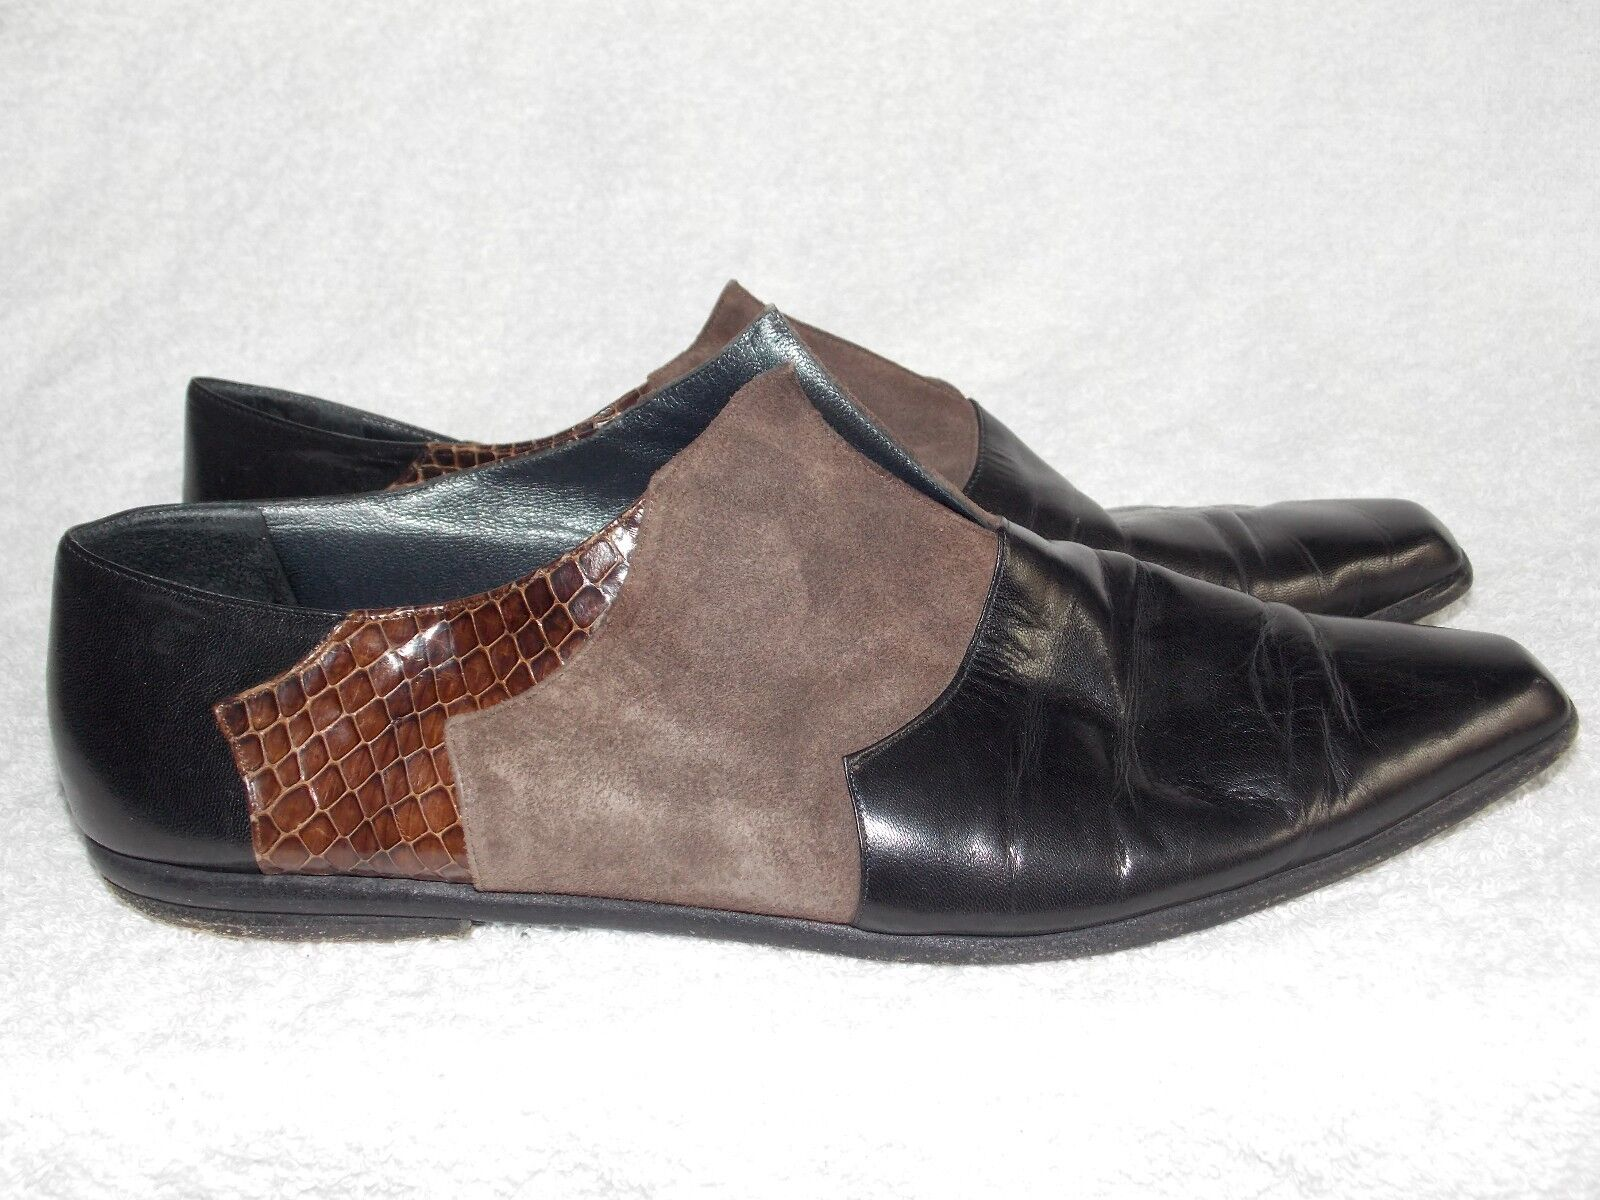 Albanese Roma Leather Snake Print Suede Slip On MULES 40 Used